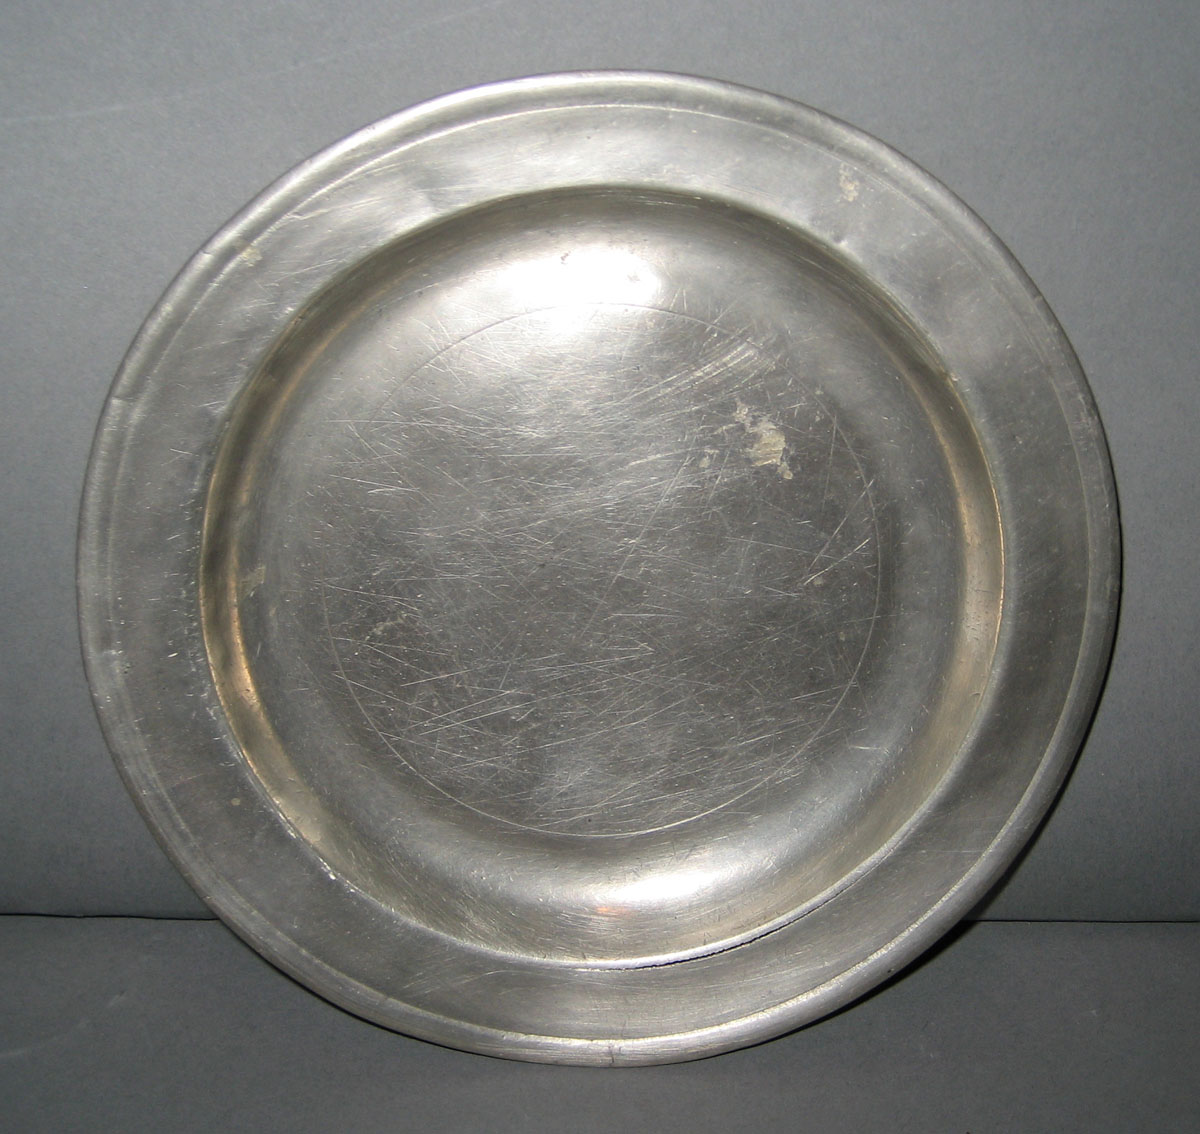 1953.0032 Plate